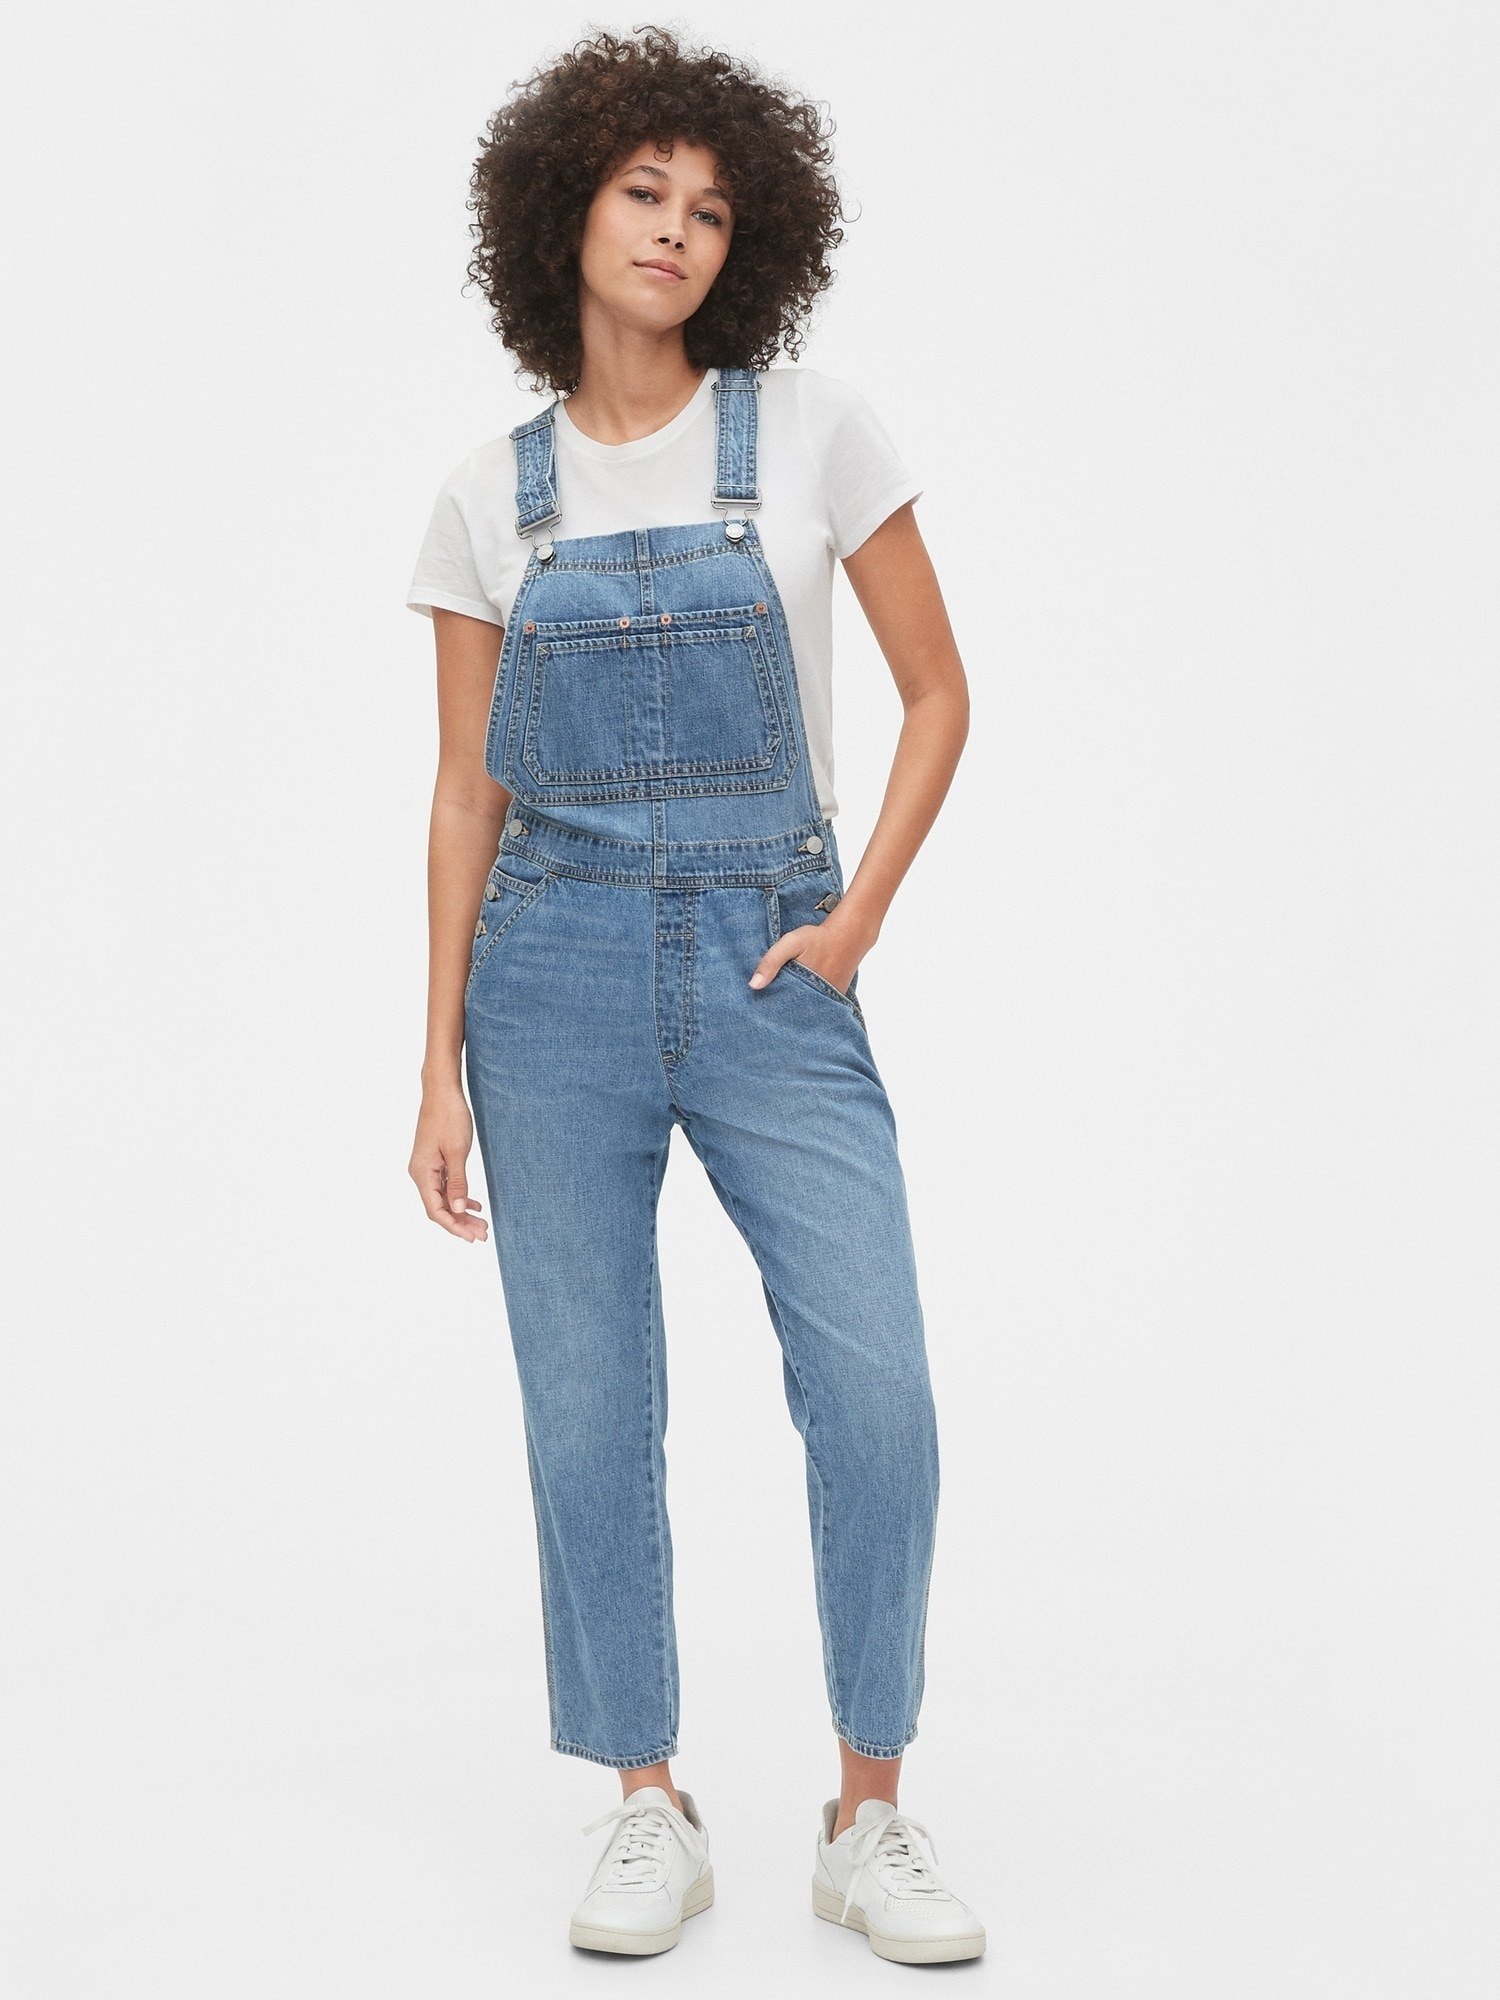 The overalls